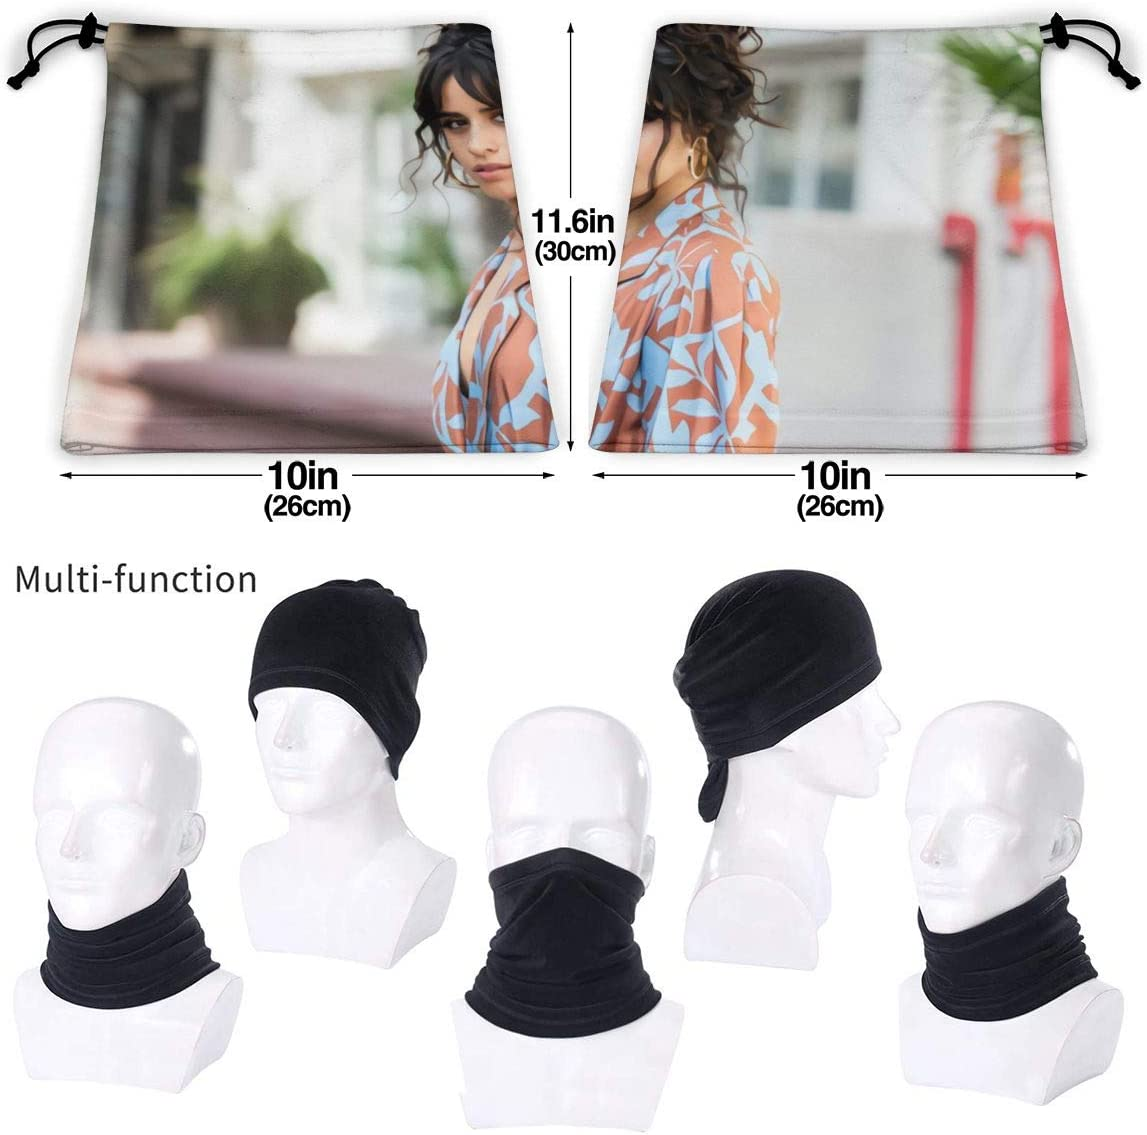 Camila Cabello Highly Elastic Warm Microfiber Neck Thermal Mask Scarf Unisex Windproof Face Mask